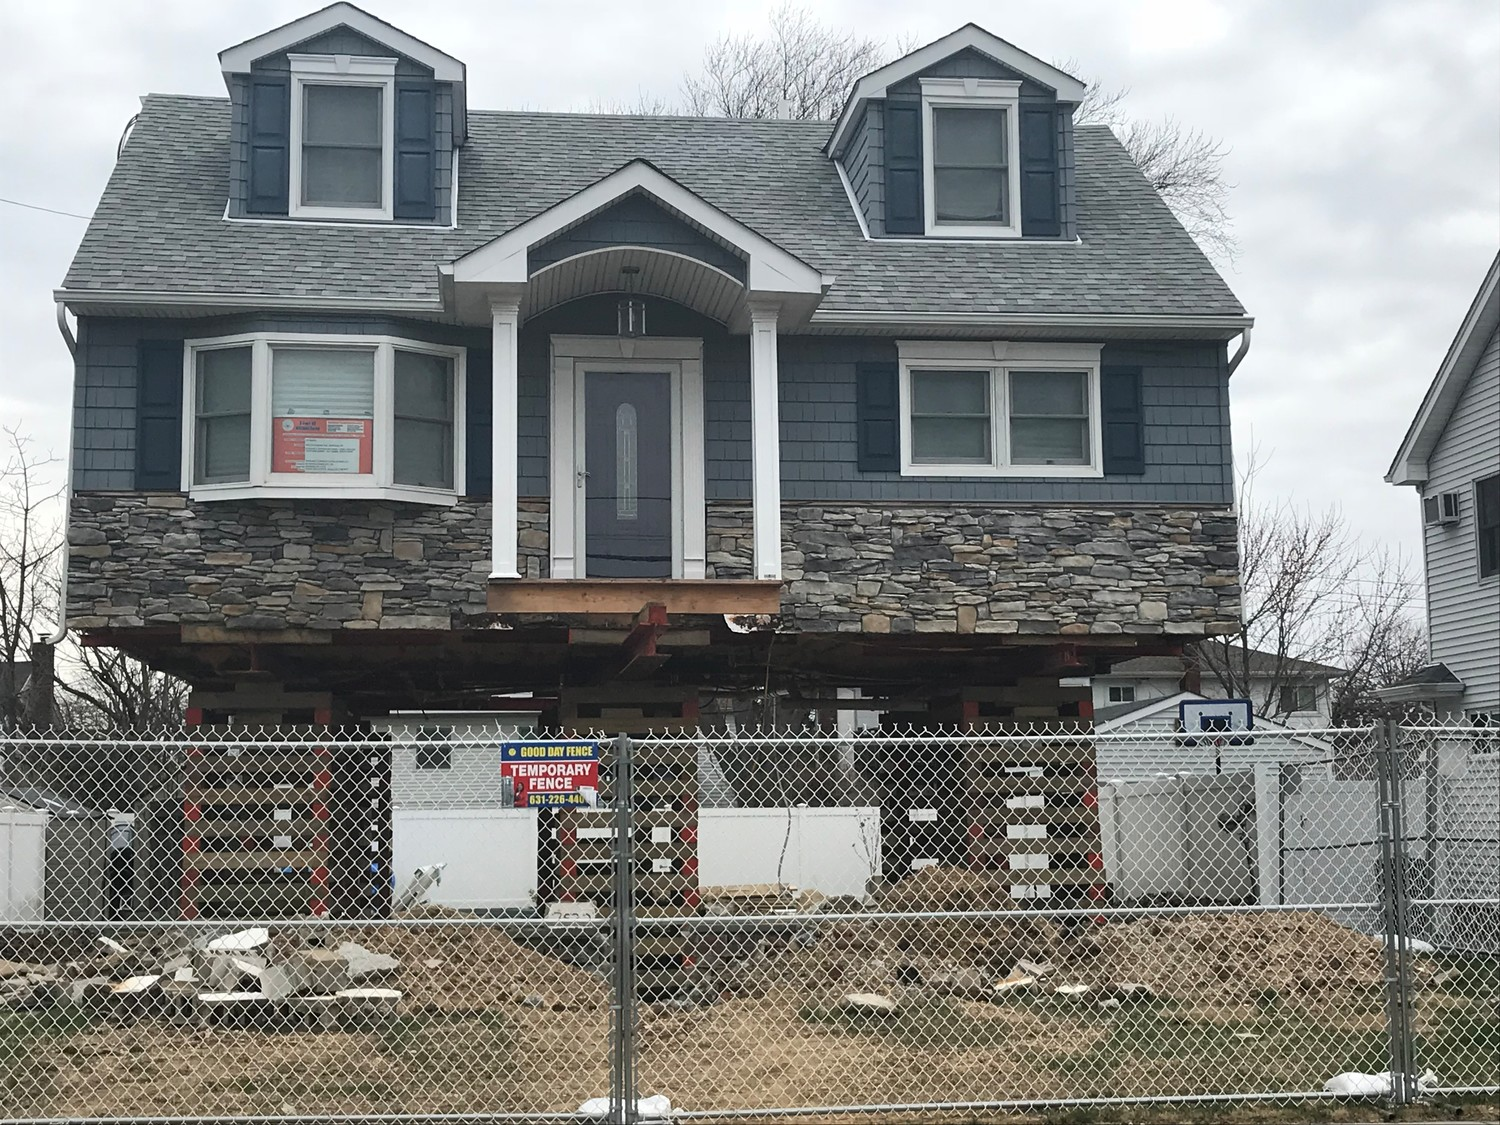 The Dalys' home in Wantagh was lifted but never set back down on a new foundation. They had to pay for the work-zone fence around it or risk hefty Town of Hempstead fines.